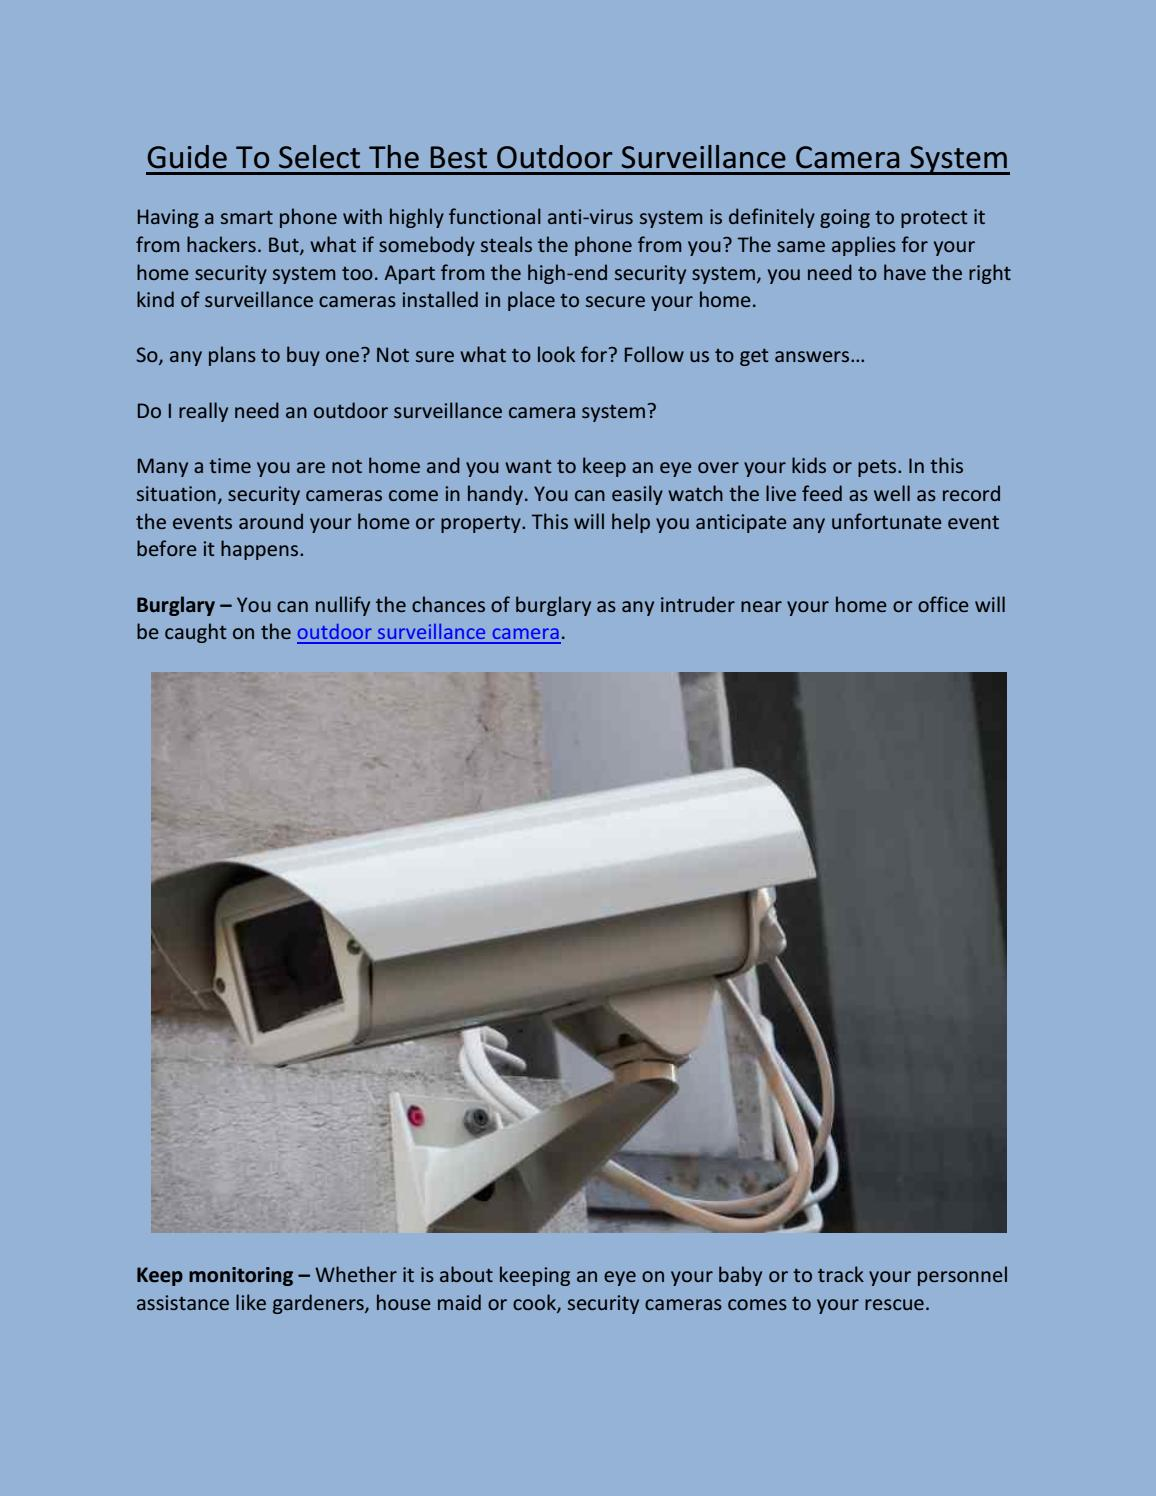 Guide to select the best outdoor surveillance camera system by